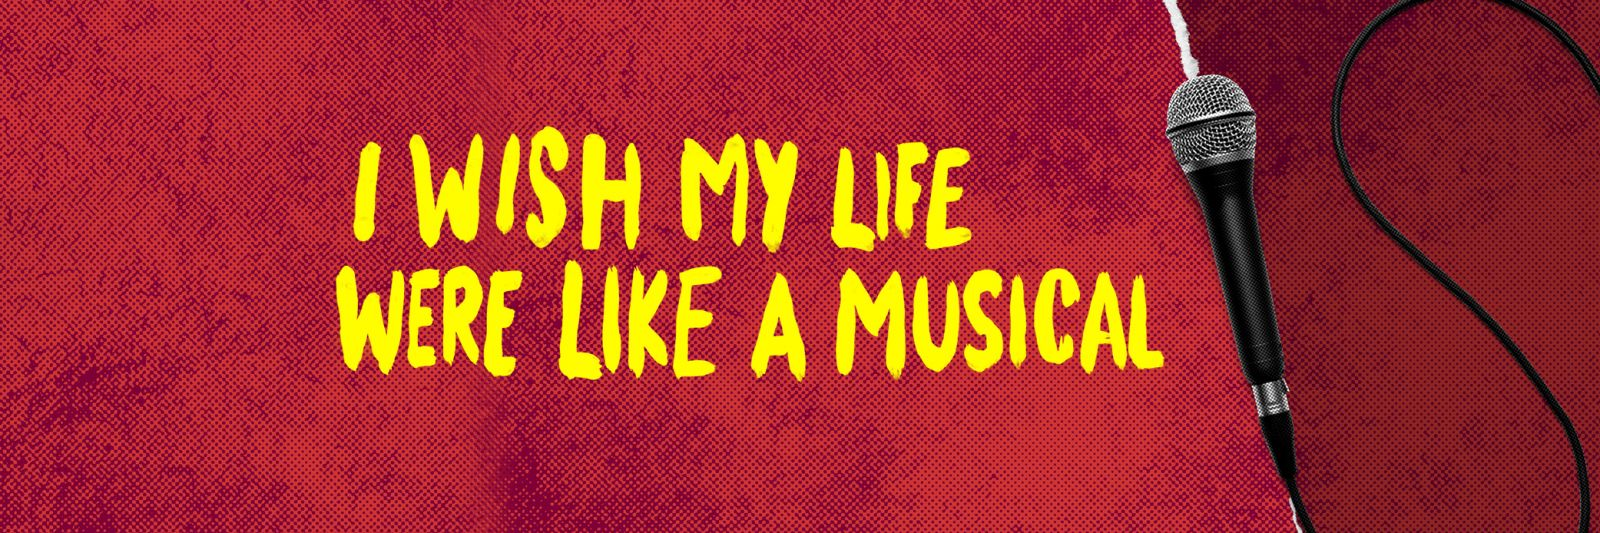 I Wish My Life Were Like A Musical